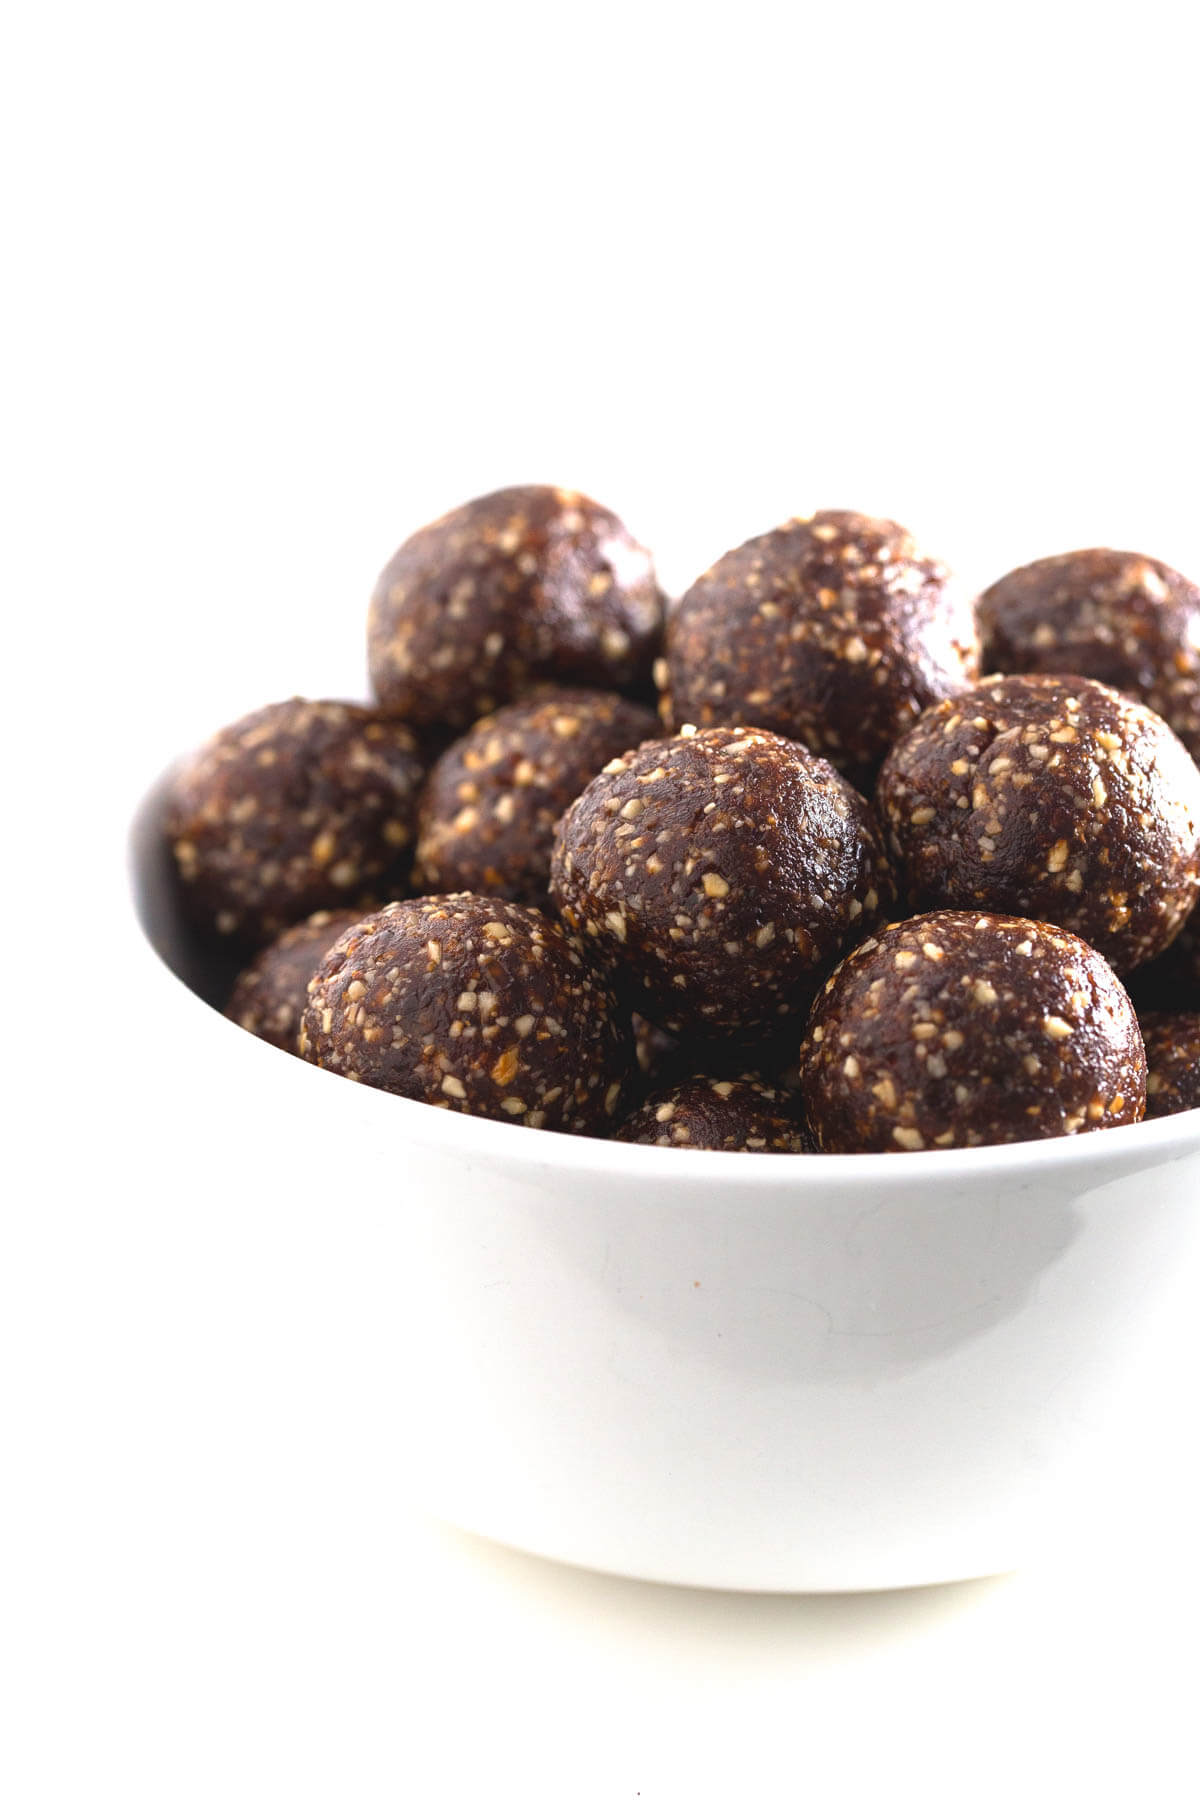 Energy balls: These energy balls are very satiating, easy to prepare, transport and give us a lot of energy. They are perfect for athletes and students.